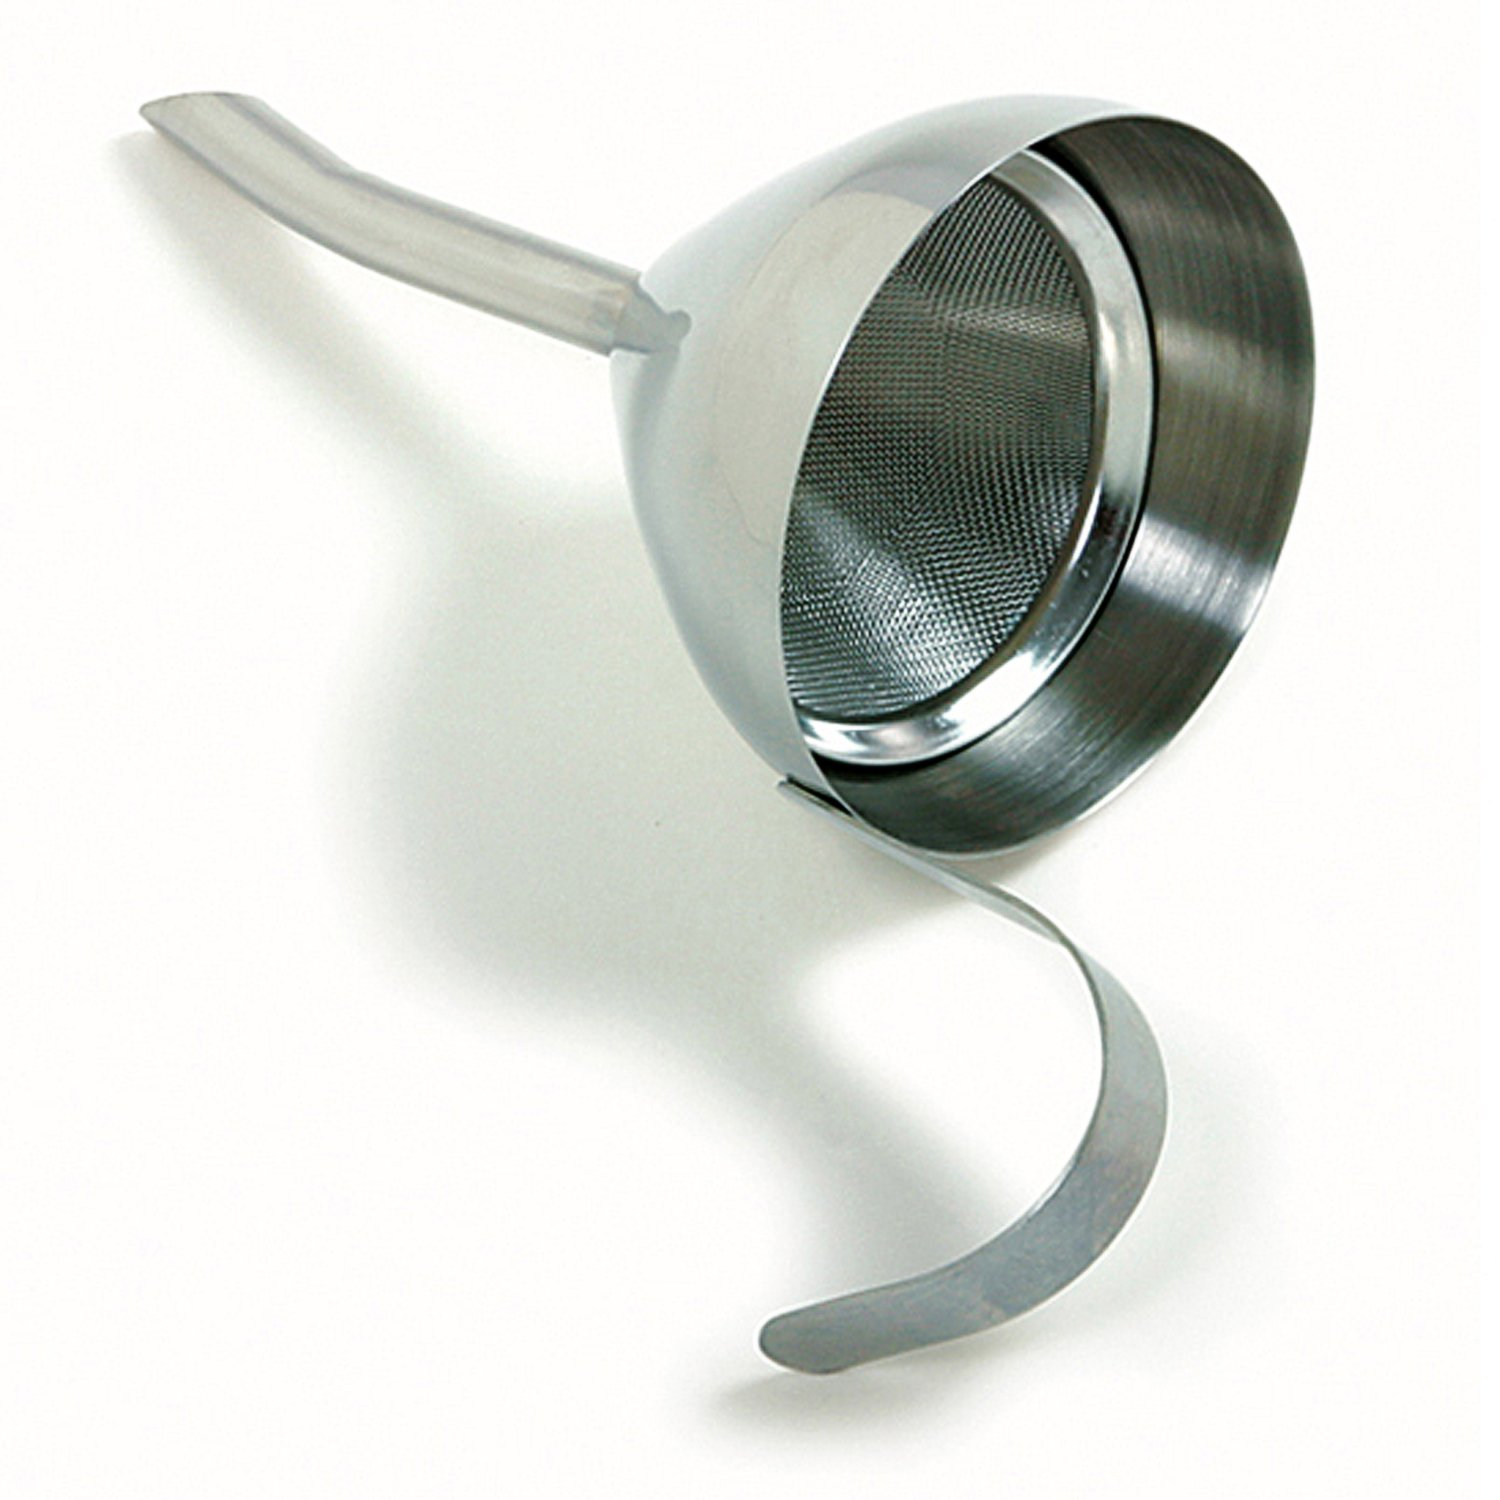 Norpro Stainless Steel Funnel with Strainer 242